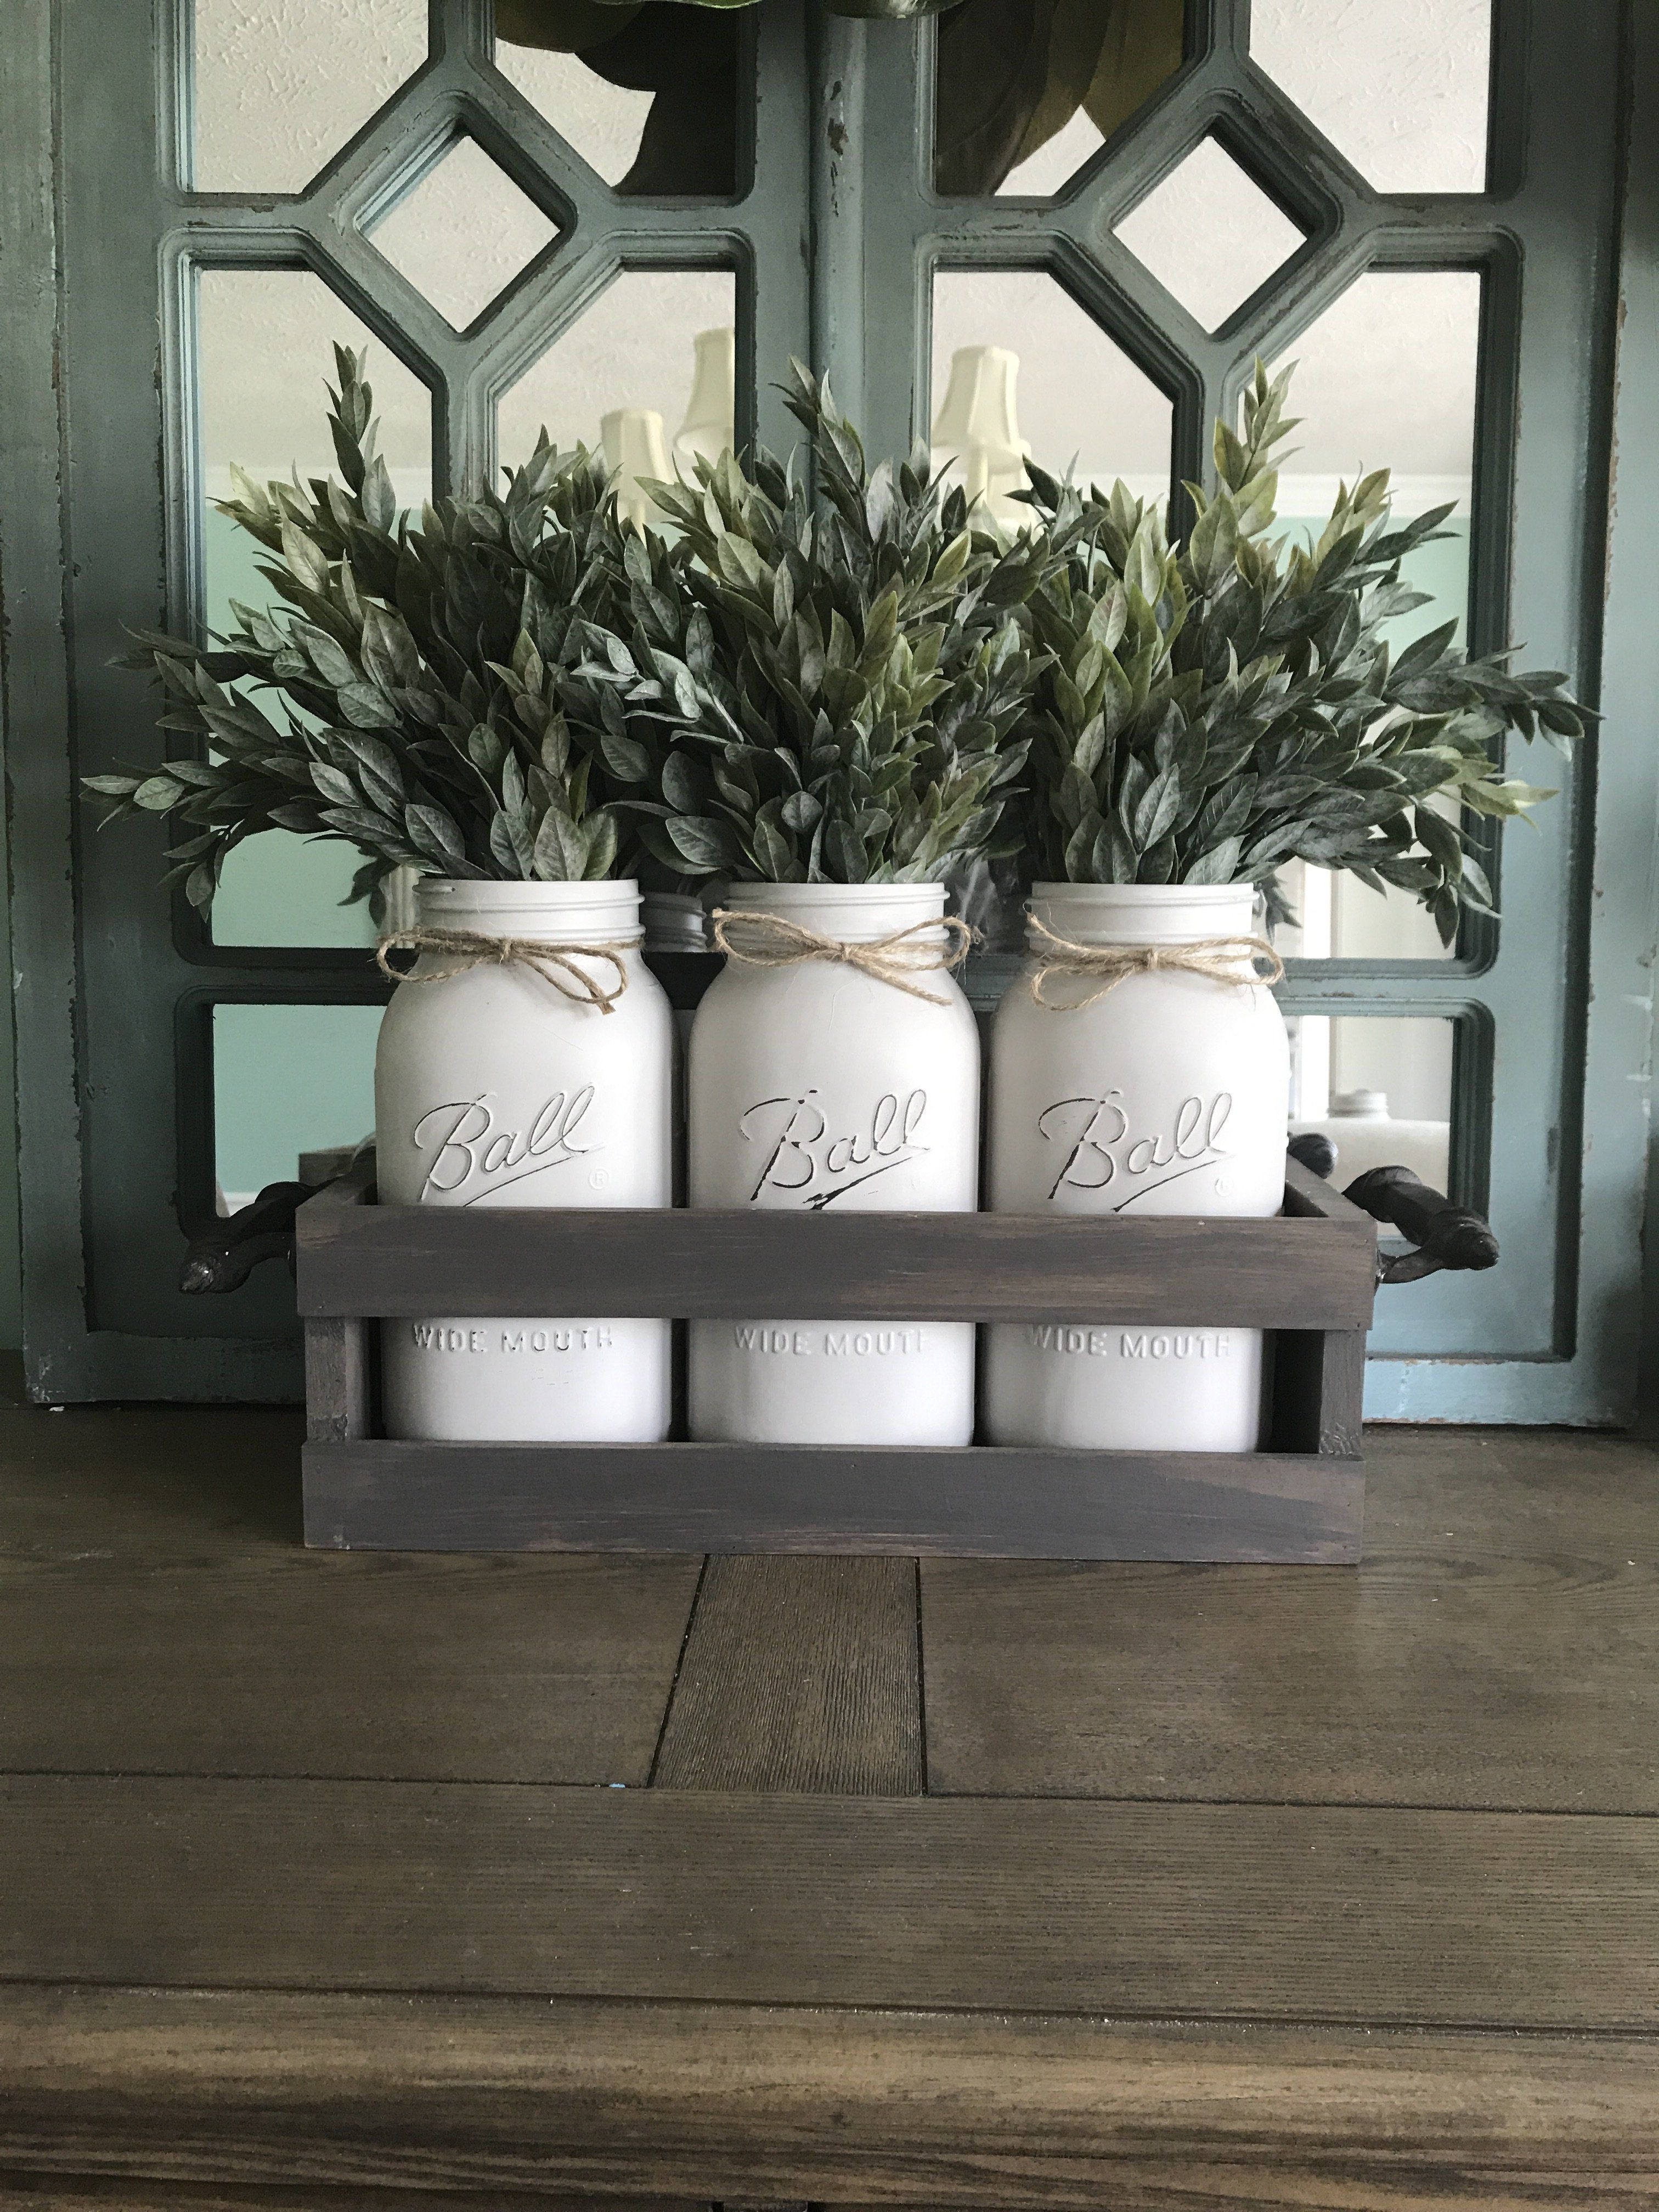 Farmhouse Mason Jar Centerpiece is part of Home Accessories Decor Mason Jars - Do you have a big farmhouse table that you're trying to find that perfect centerpiece for  This piece has three light gray half gallon Mason jars with a distressed barnwood style crate and black wrought iron handles  The beautiful ruscus greenery comes included as well!